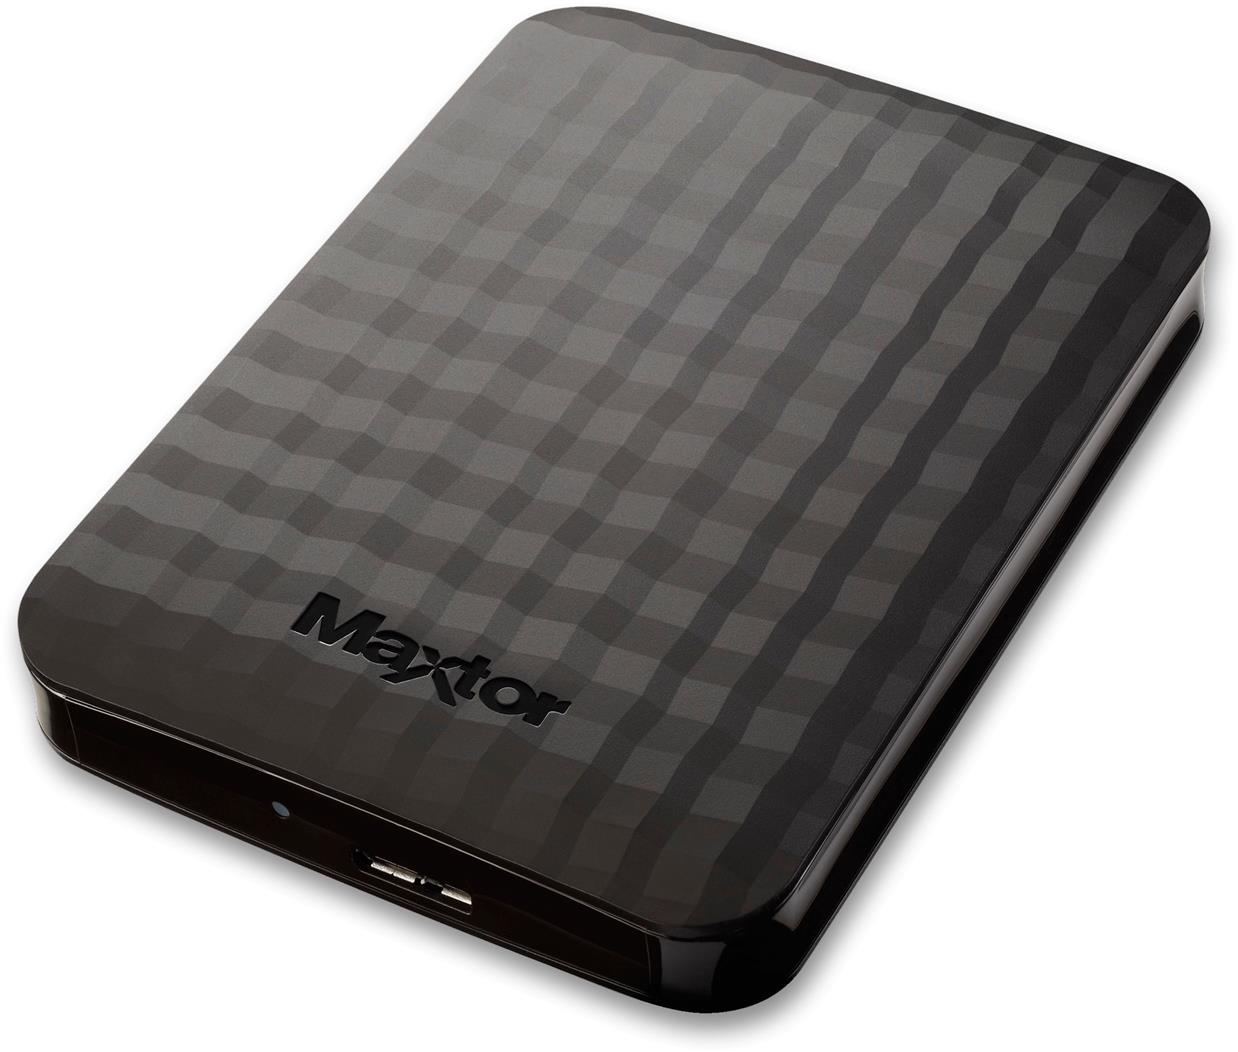 Maxtor M3 Usb 3.0 1TB External Hard Disc